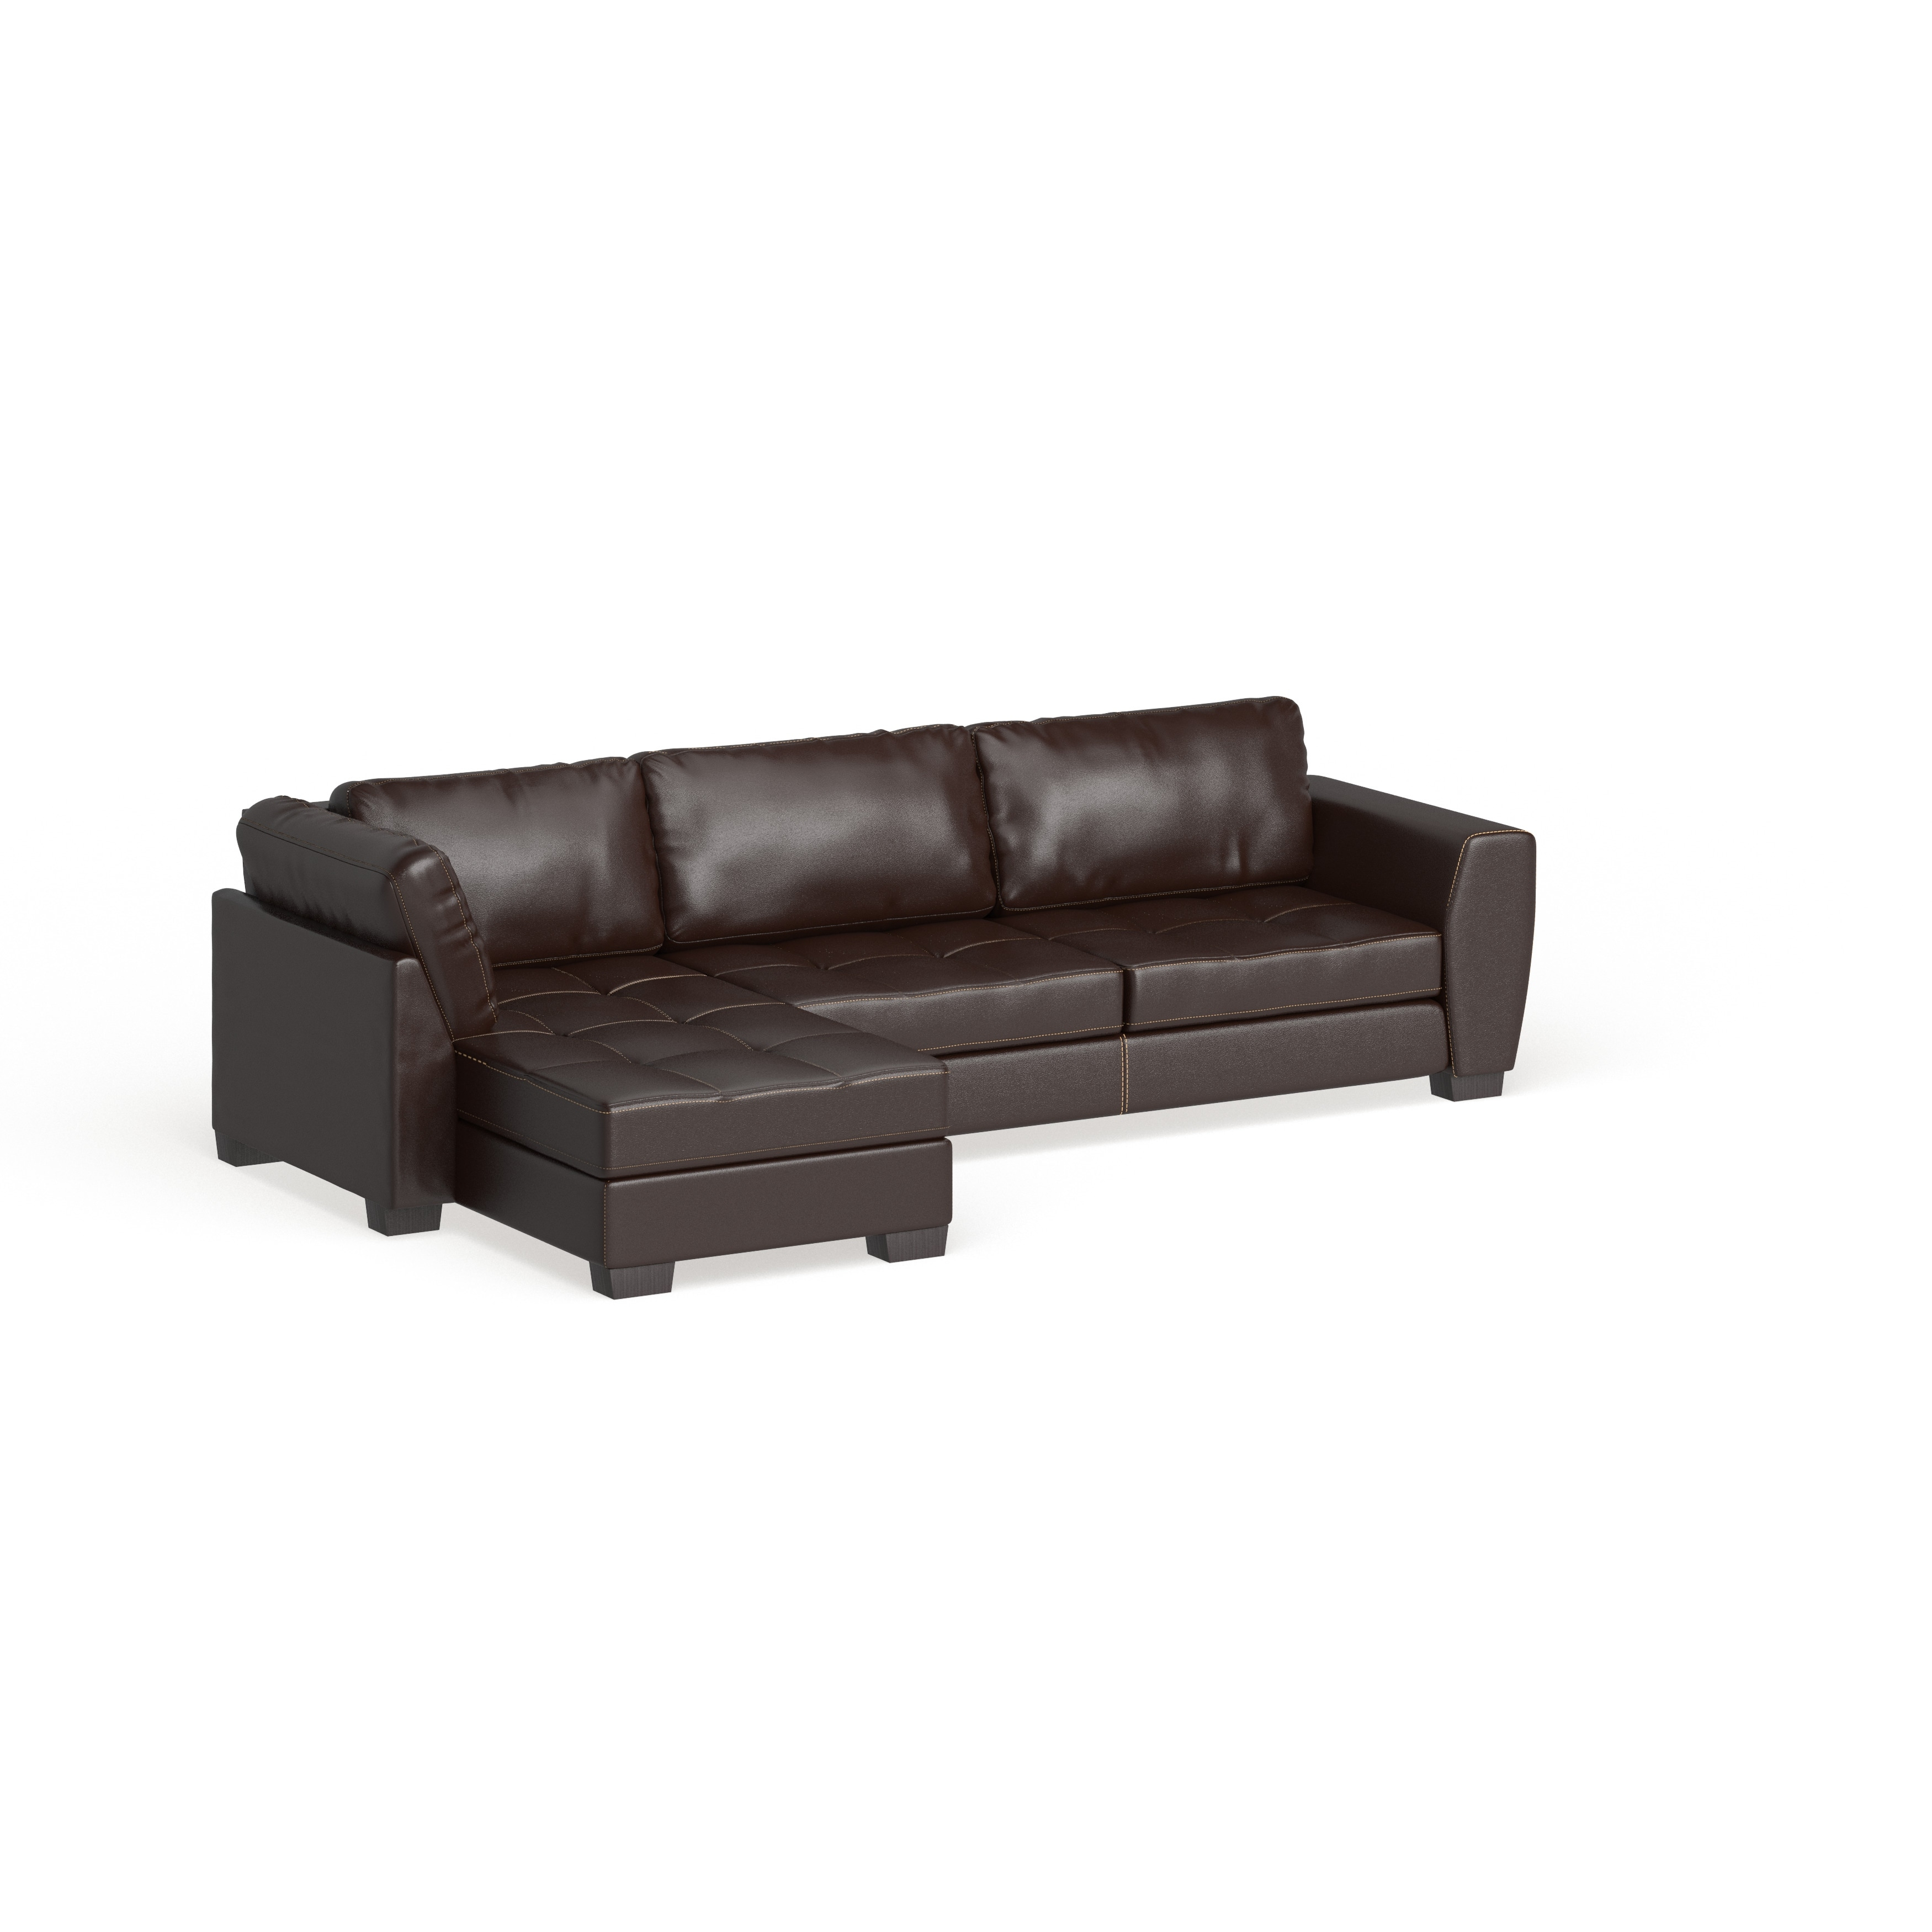 Porch Den Glendale Brown Leather Modern Sectional Sofa Set With Left Facing Chaise On Sale Overstock 20543375